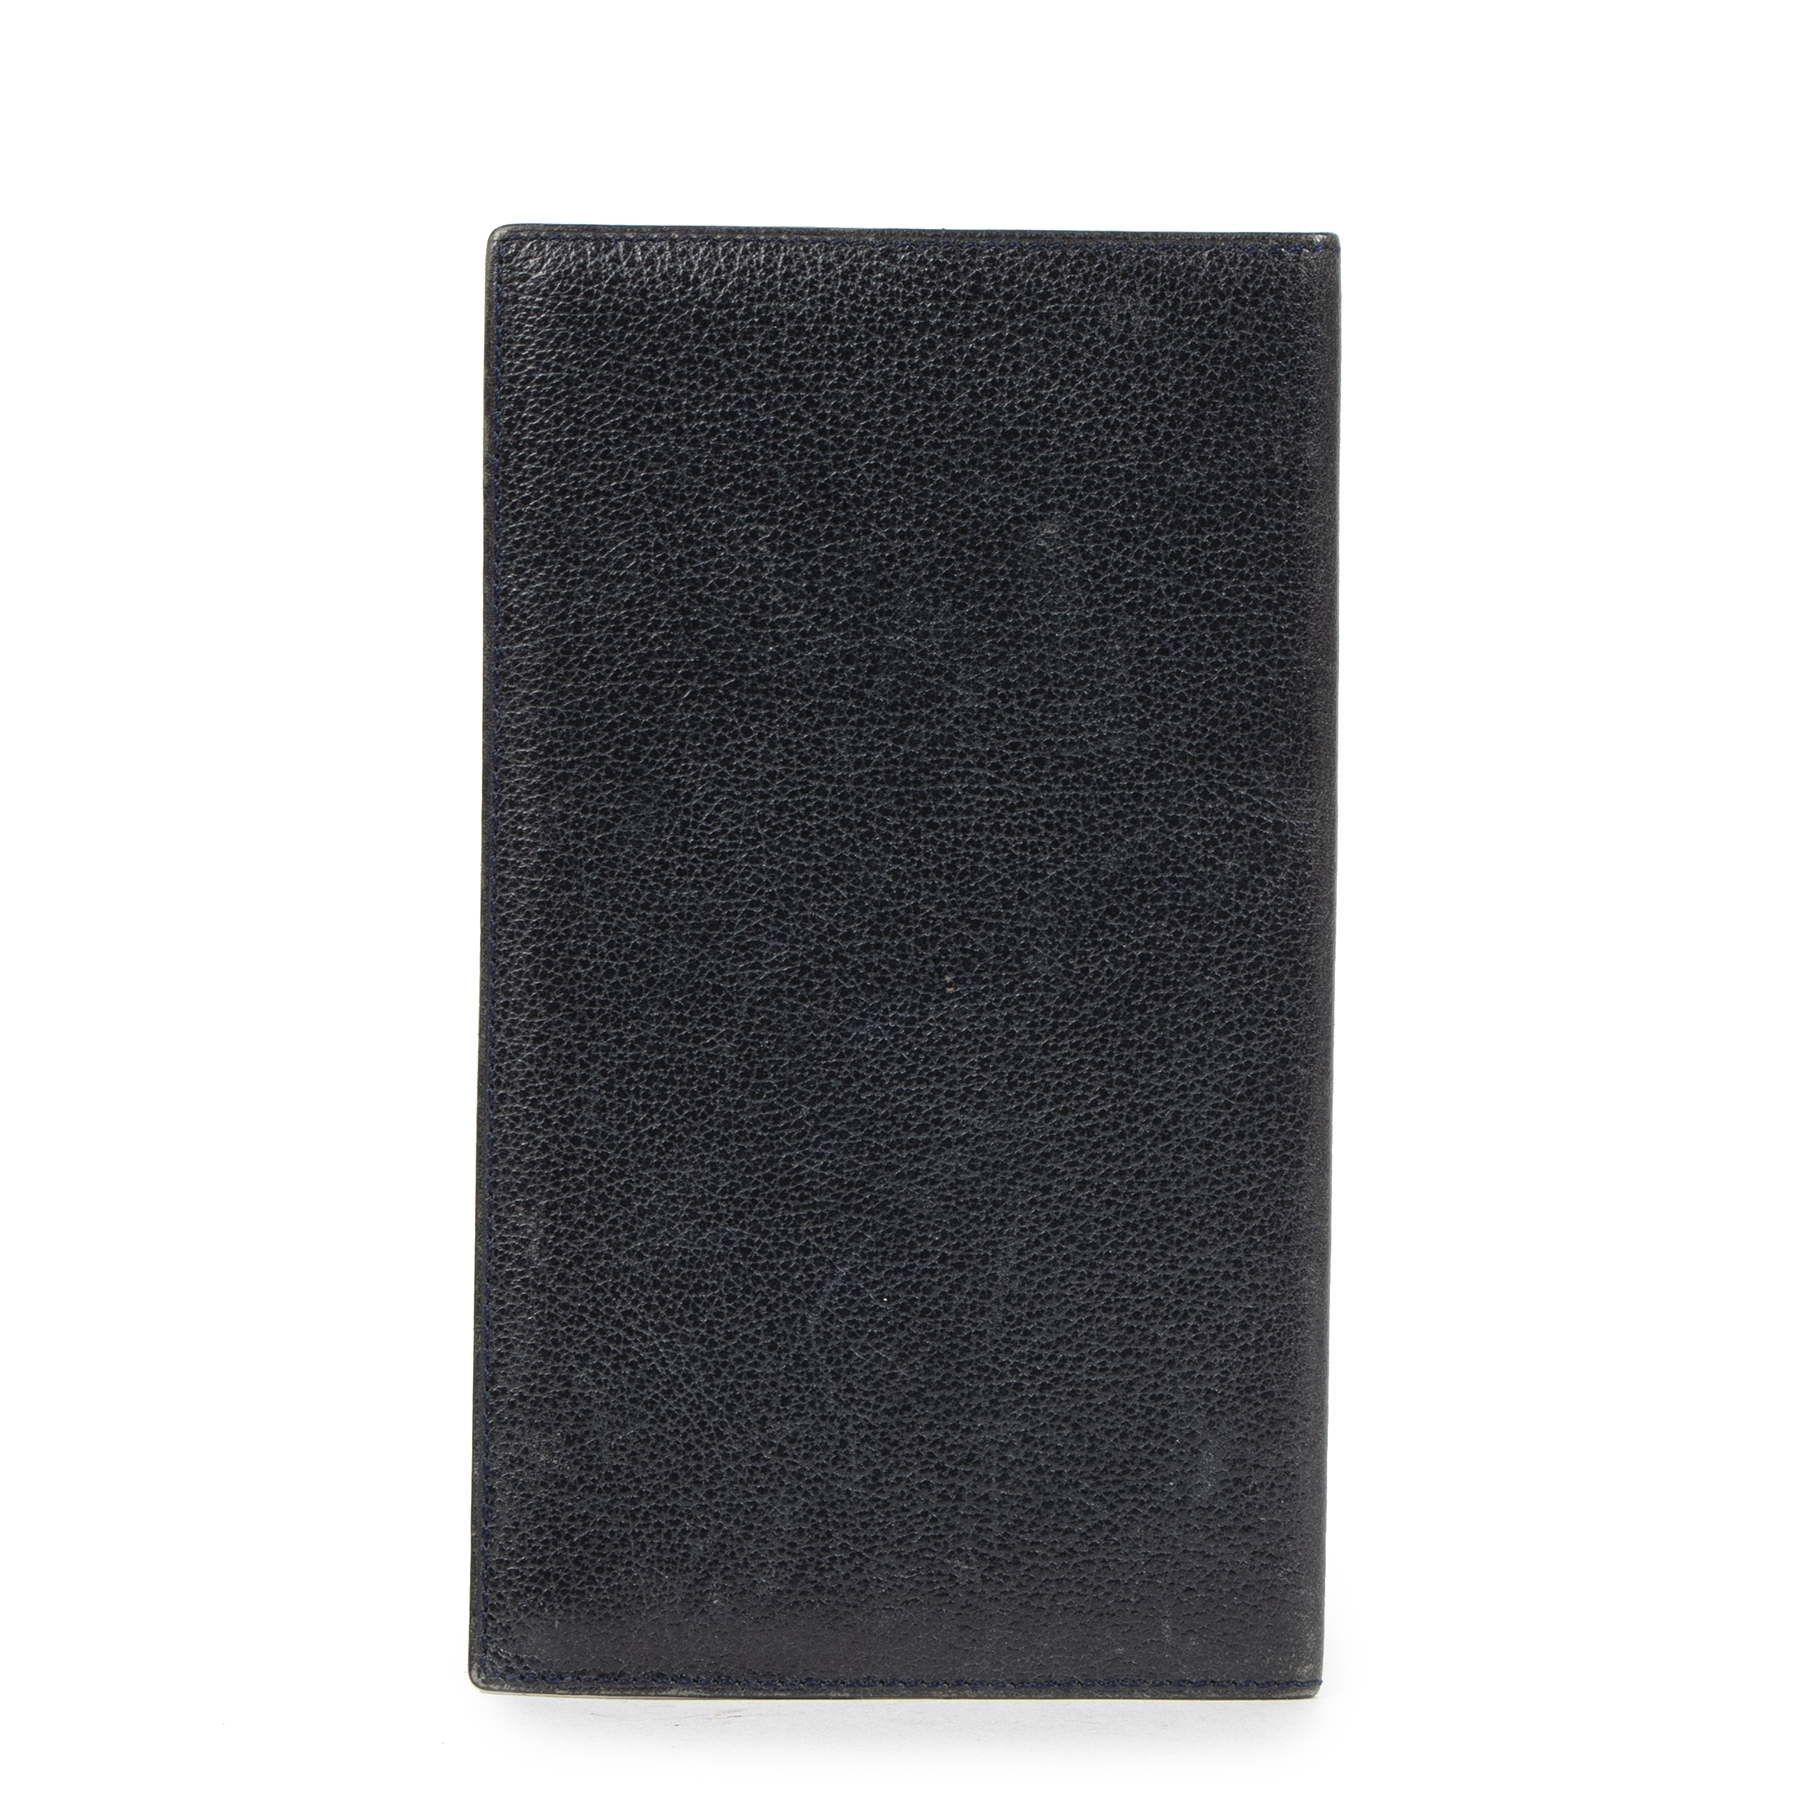 Buy authentic secondhand Delvaux Navy Leather Checkbook Wallet at the right price at LabelLOV vintage webshop. Safe and secure online shopping. Koop authentieke tweedehands Delvaux Navy Leather Checkbook Wallet met de juiste prijs bij LabelLOV